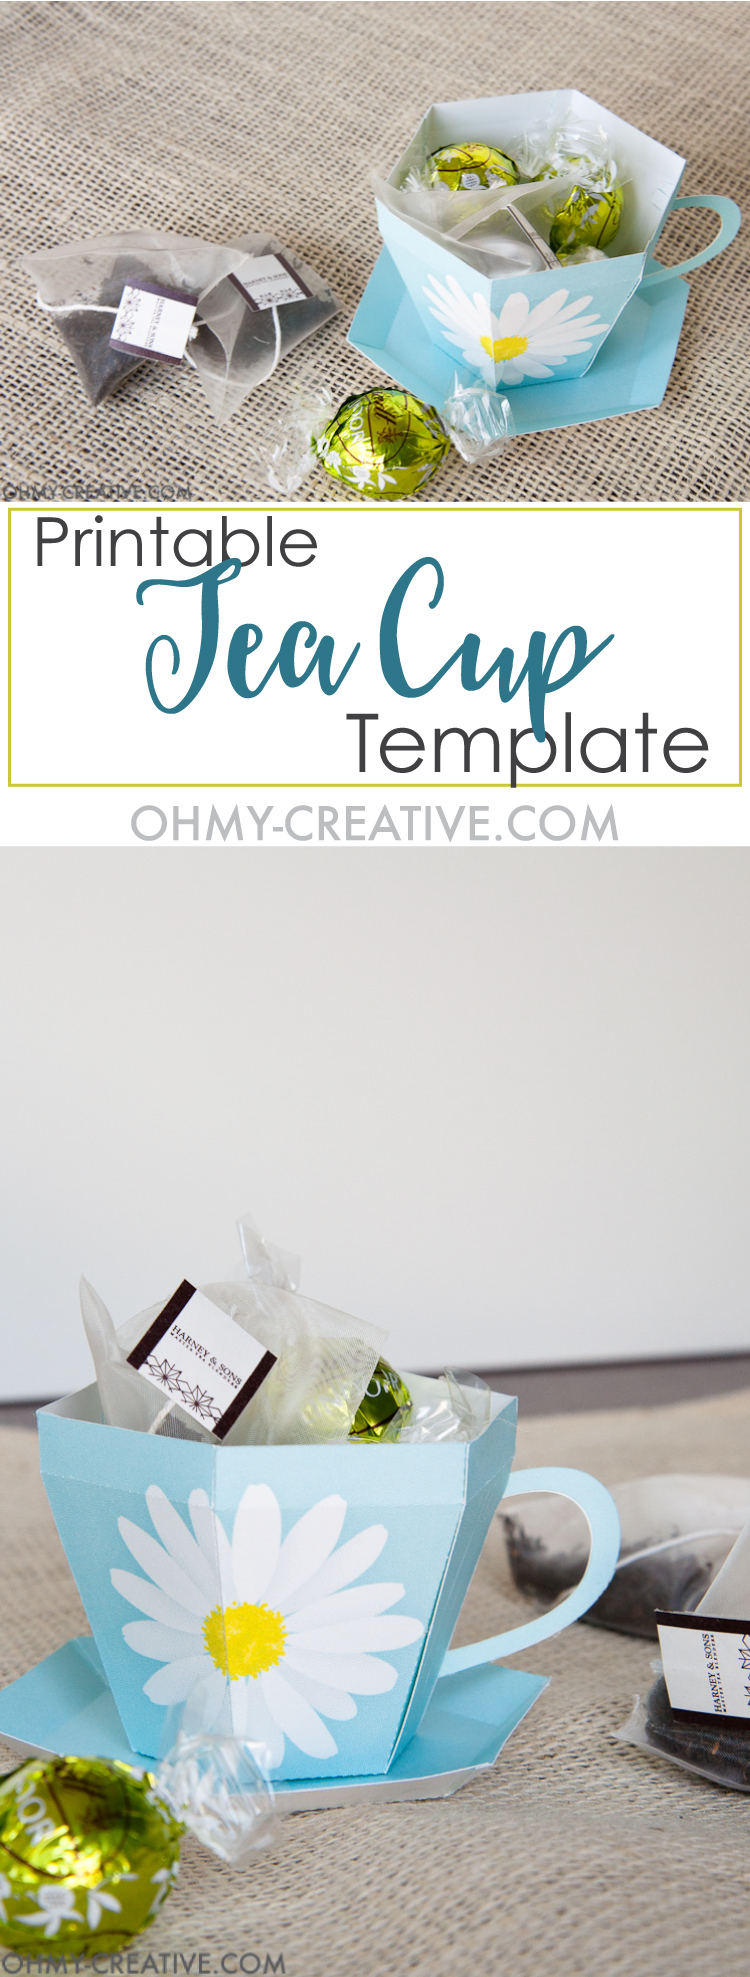 Tea Cup Template Printable | Tea Cup Gift - Oh My Creative